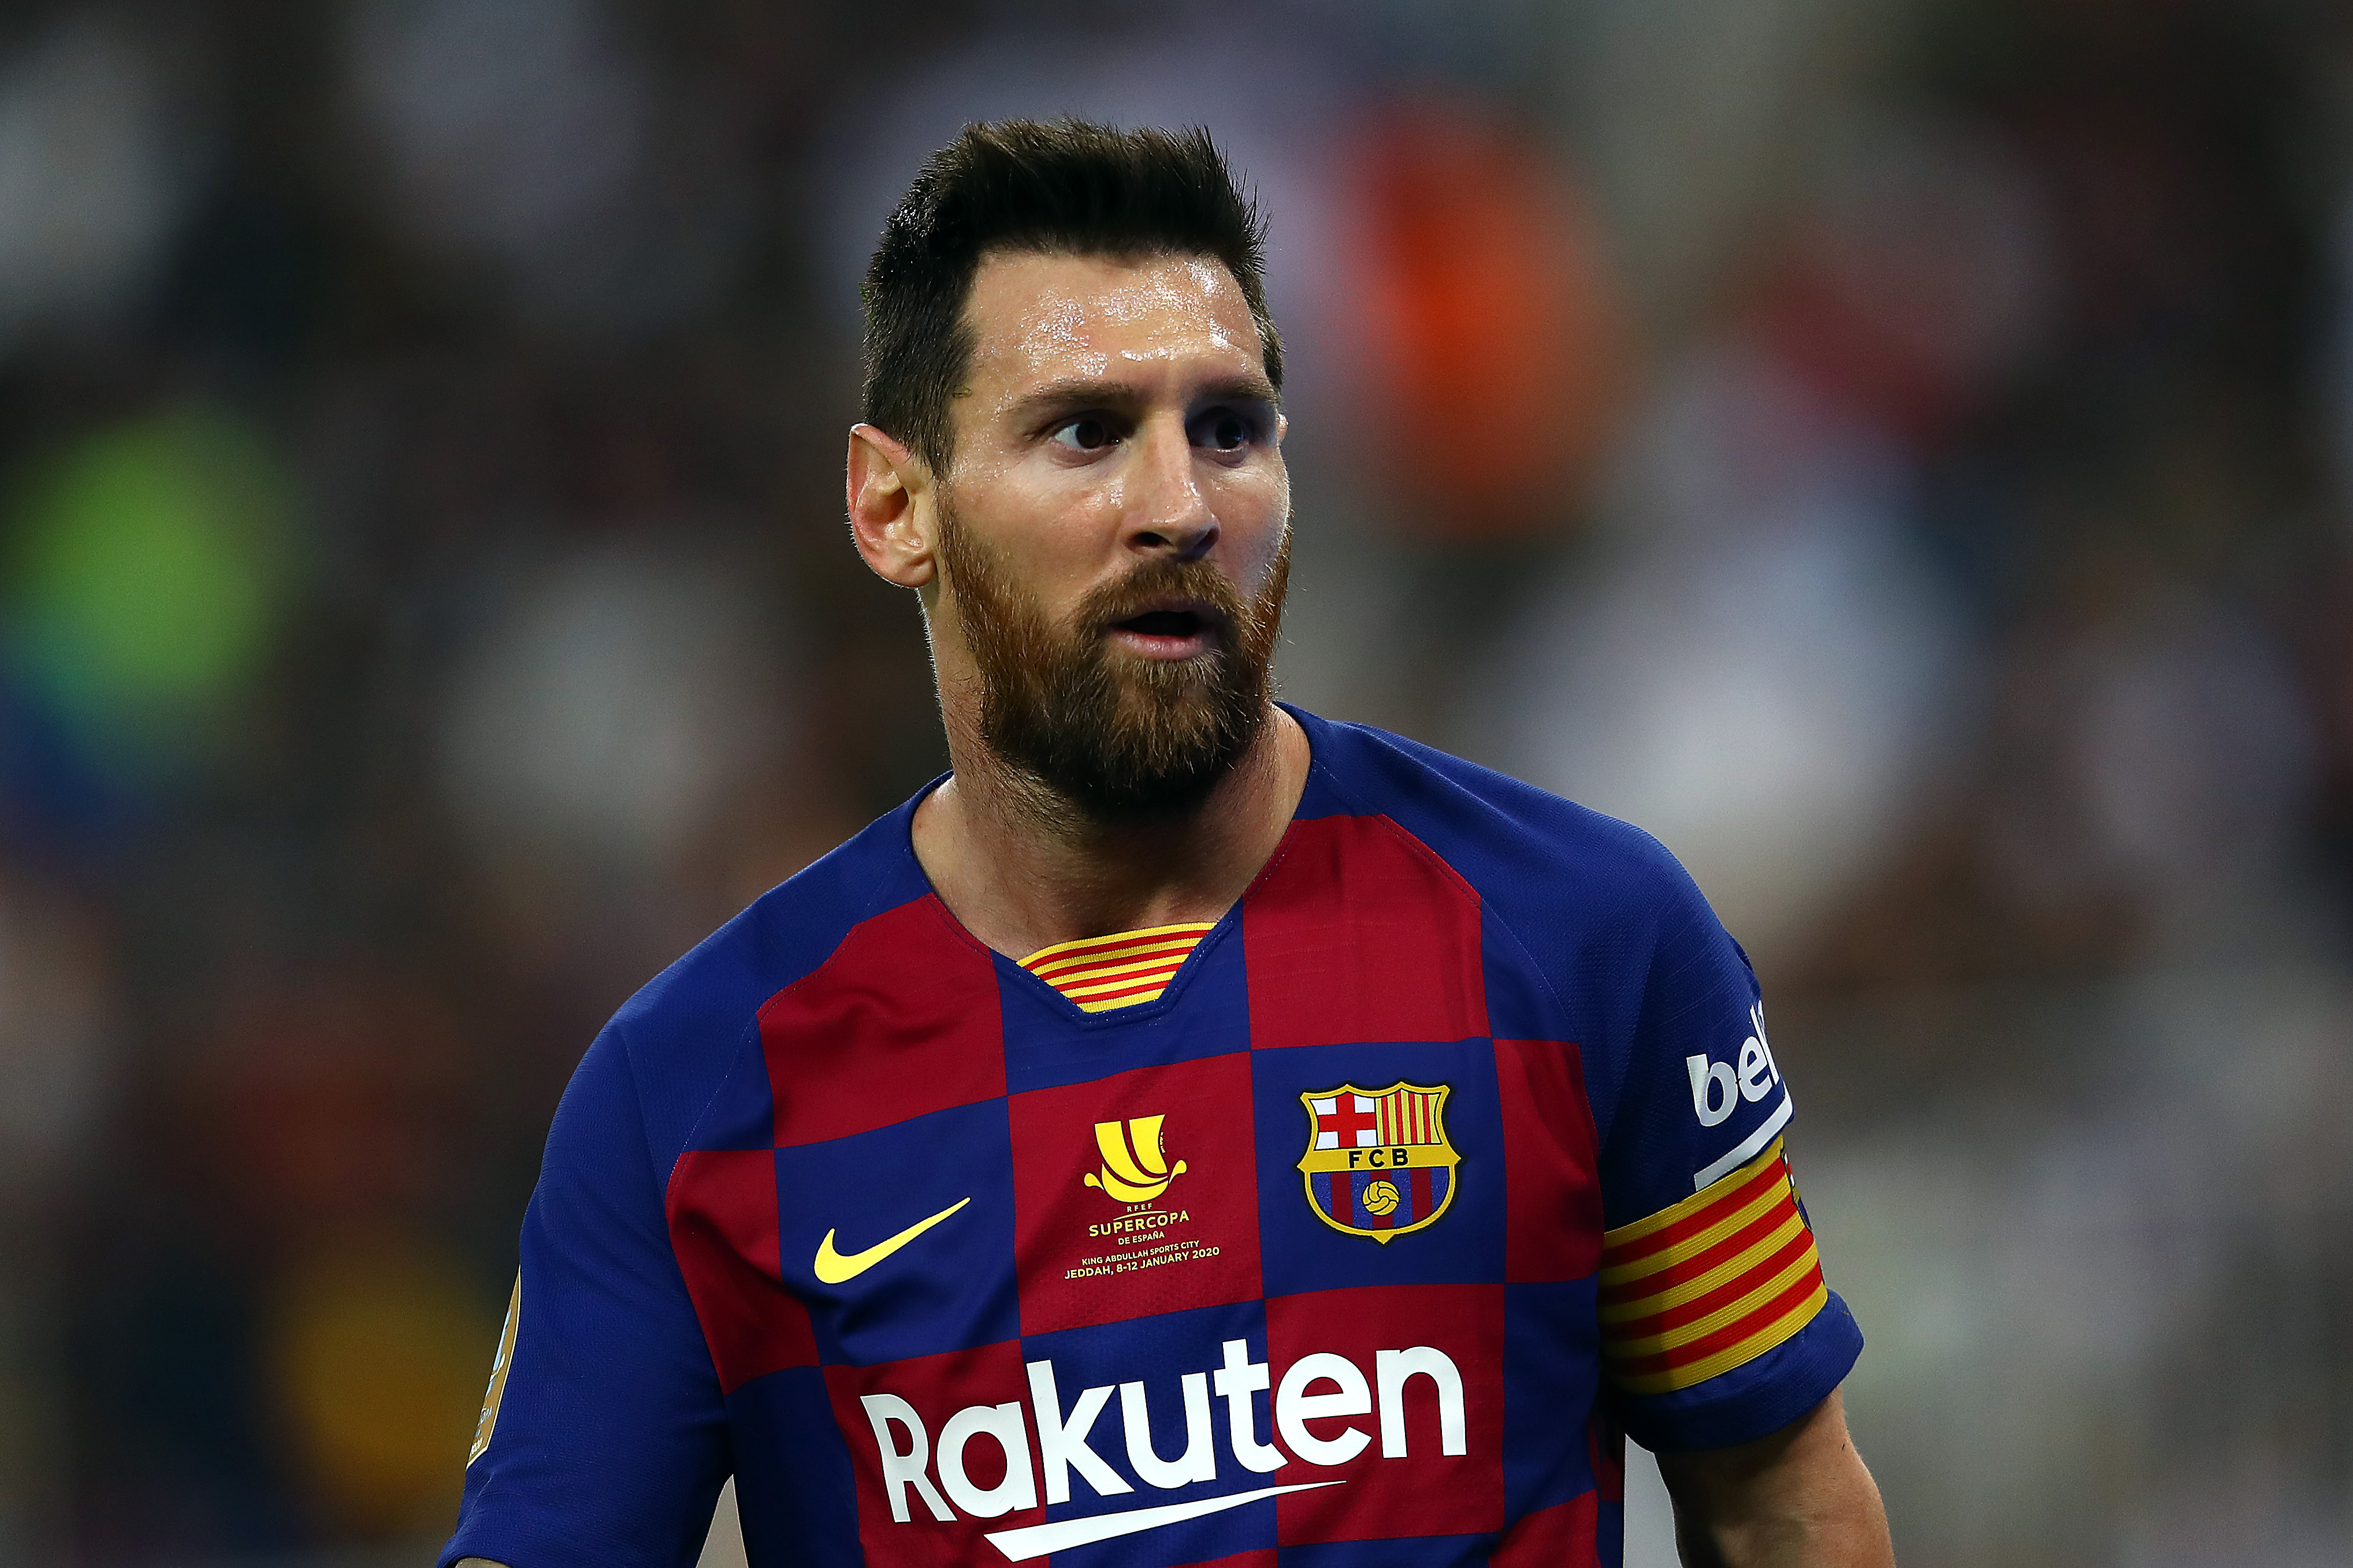 Barcelona will look up to Messi as they look to return to winning ways (Photo by Francois Nel/Getty Images)